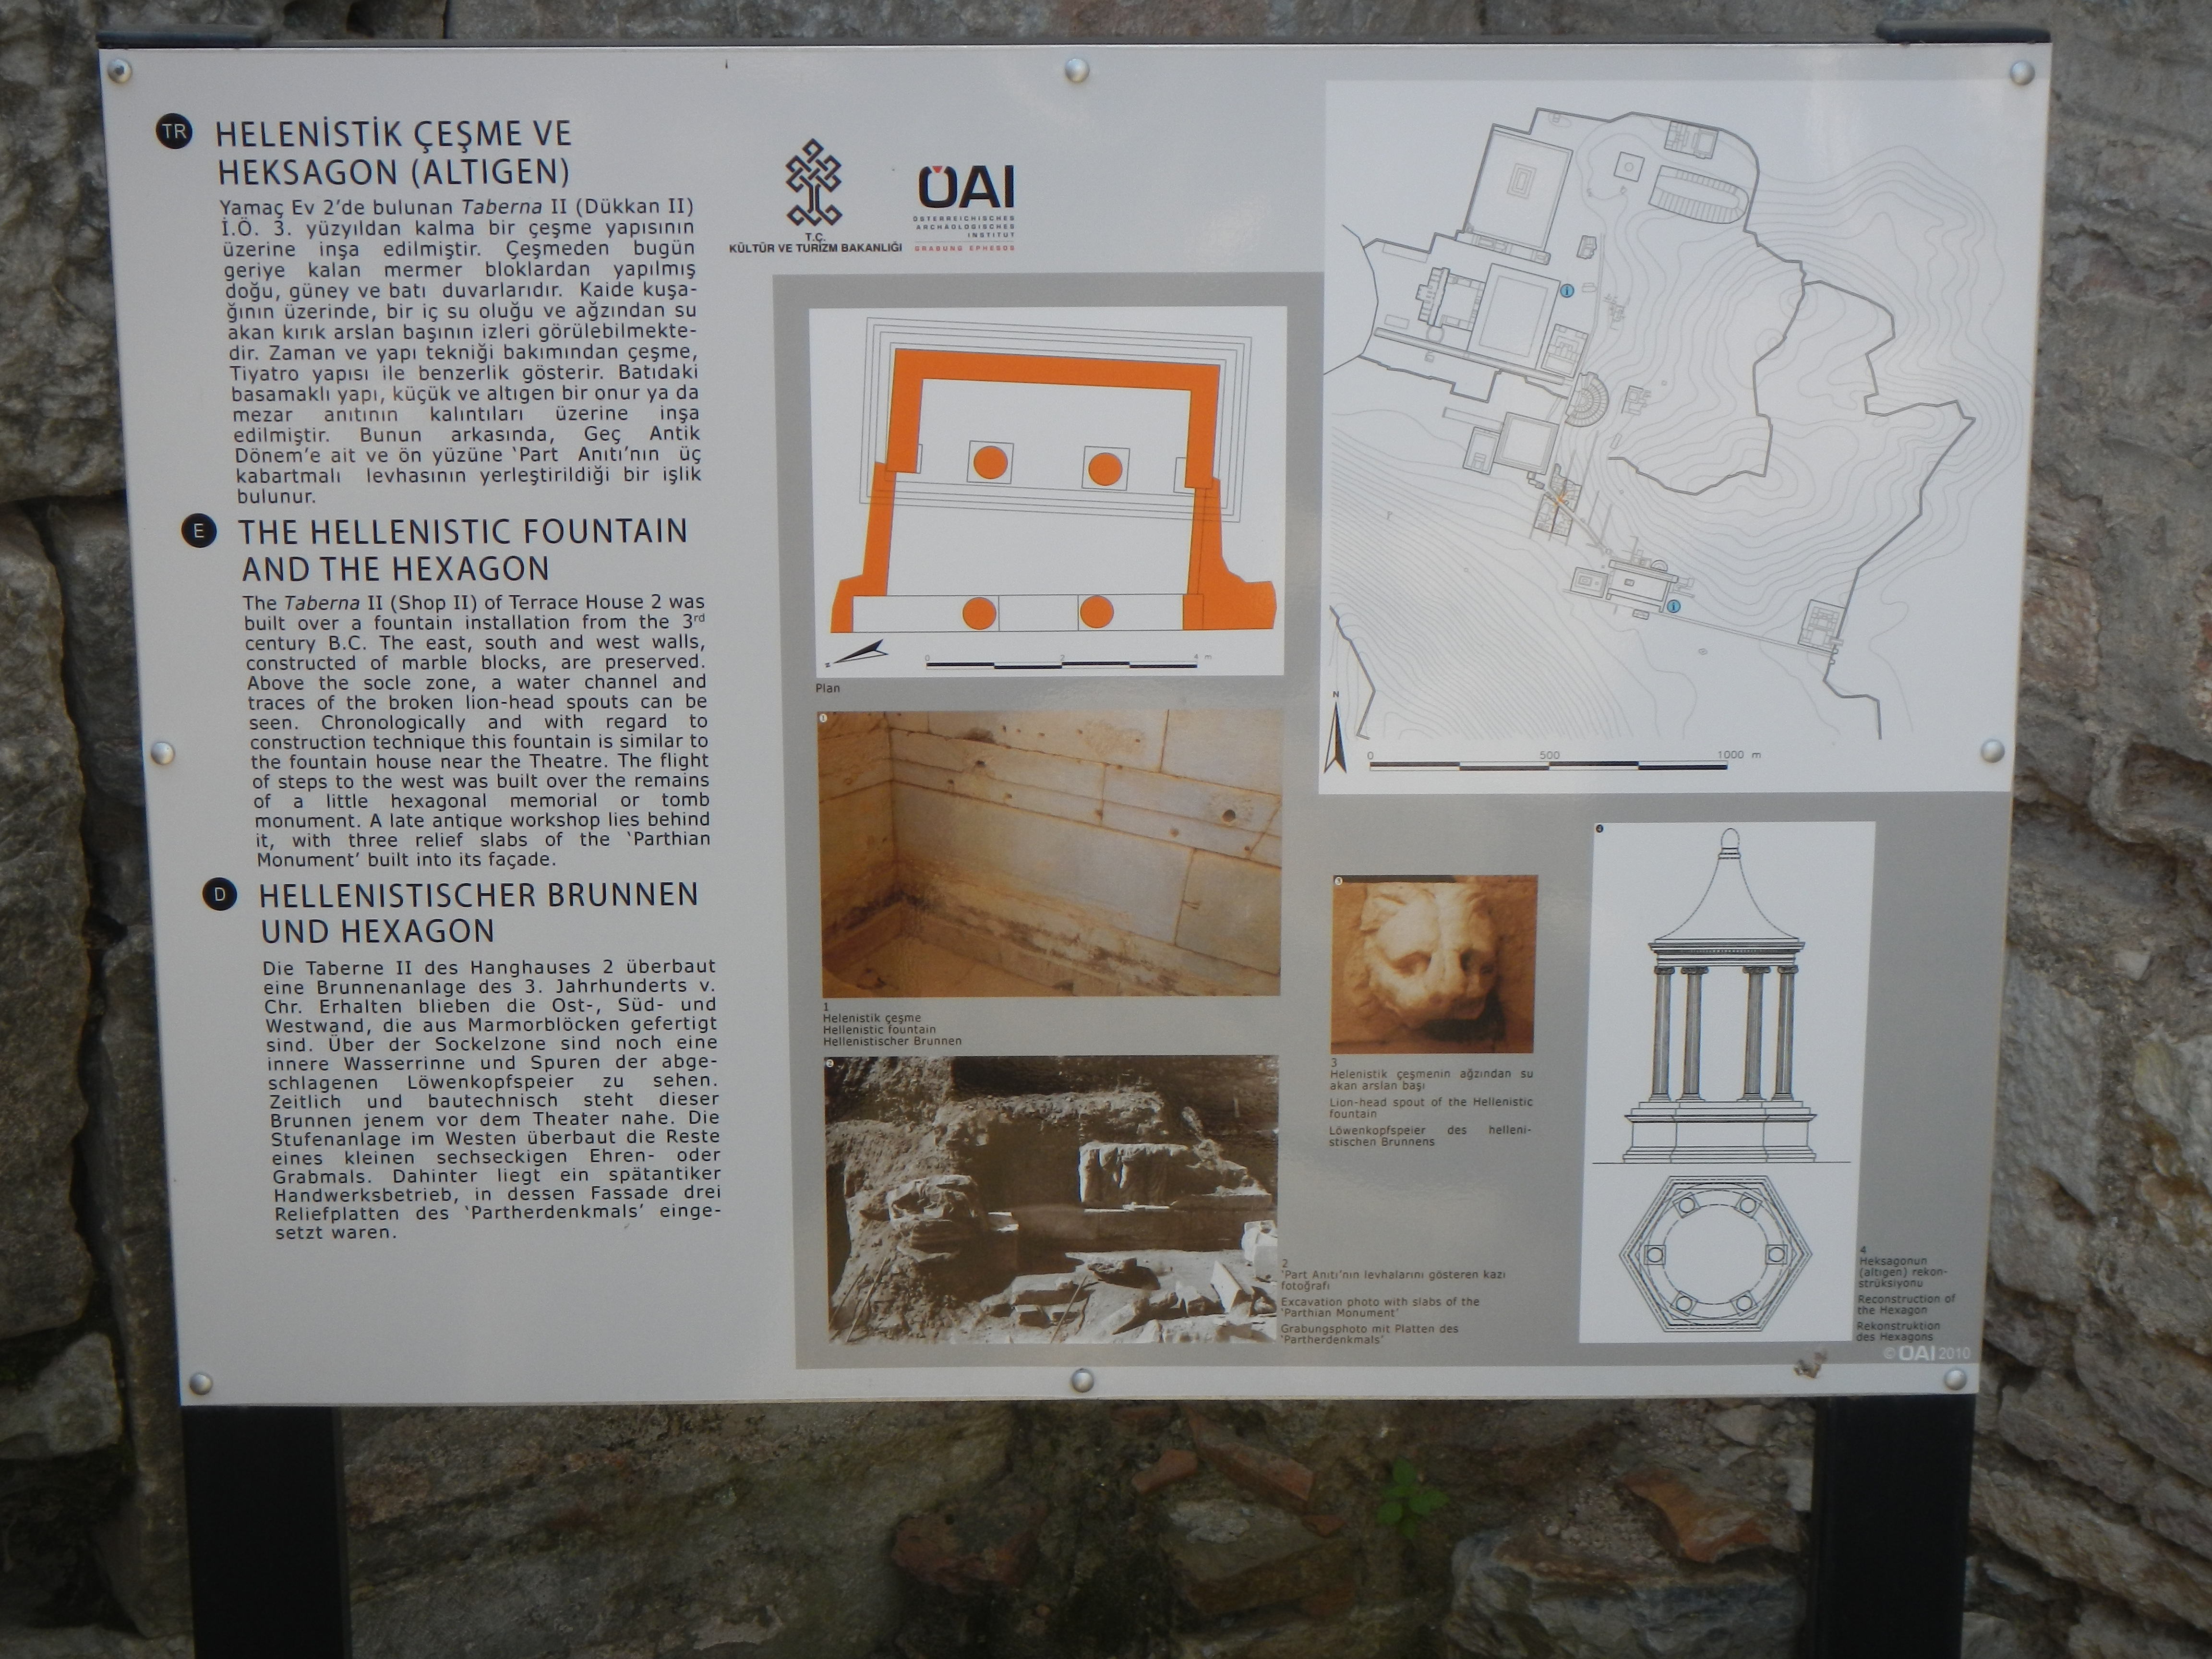 The Hellenistic Fountain and the Hexagon Marker